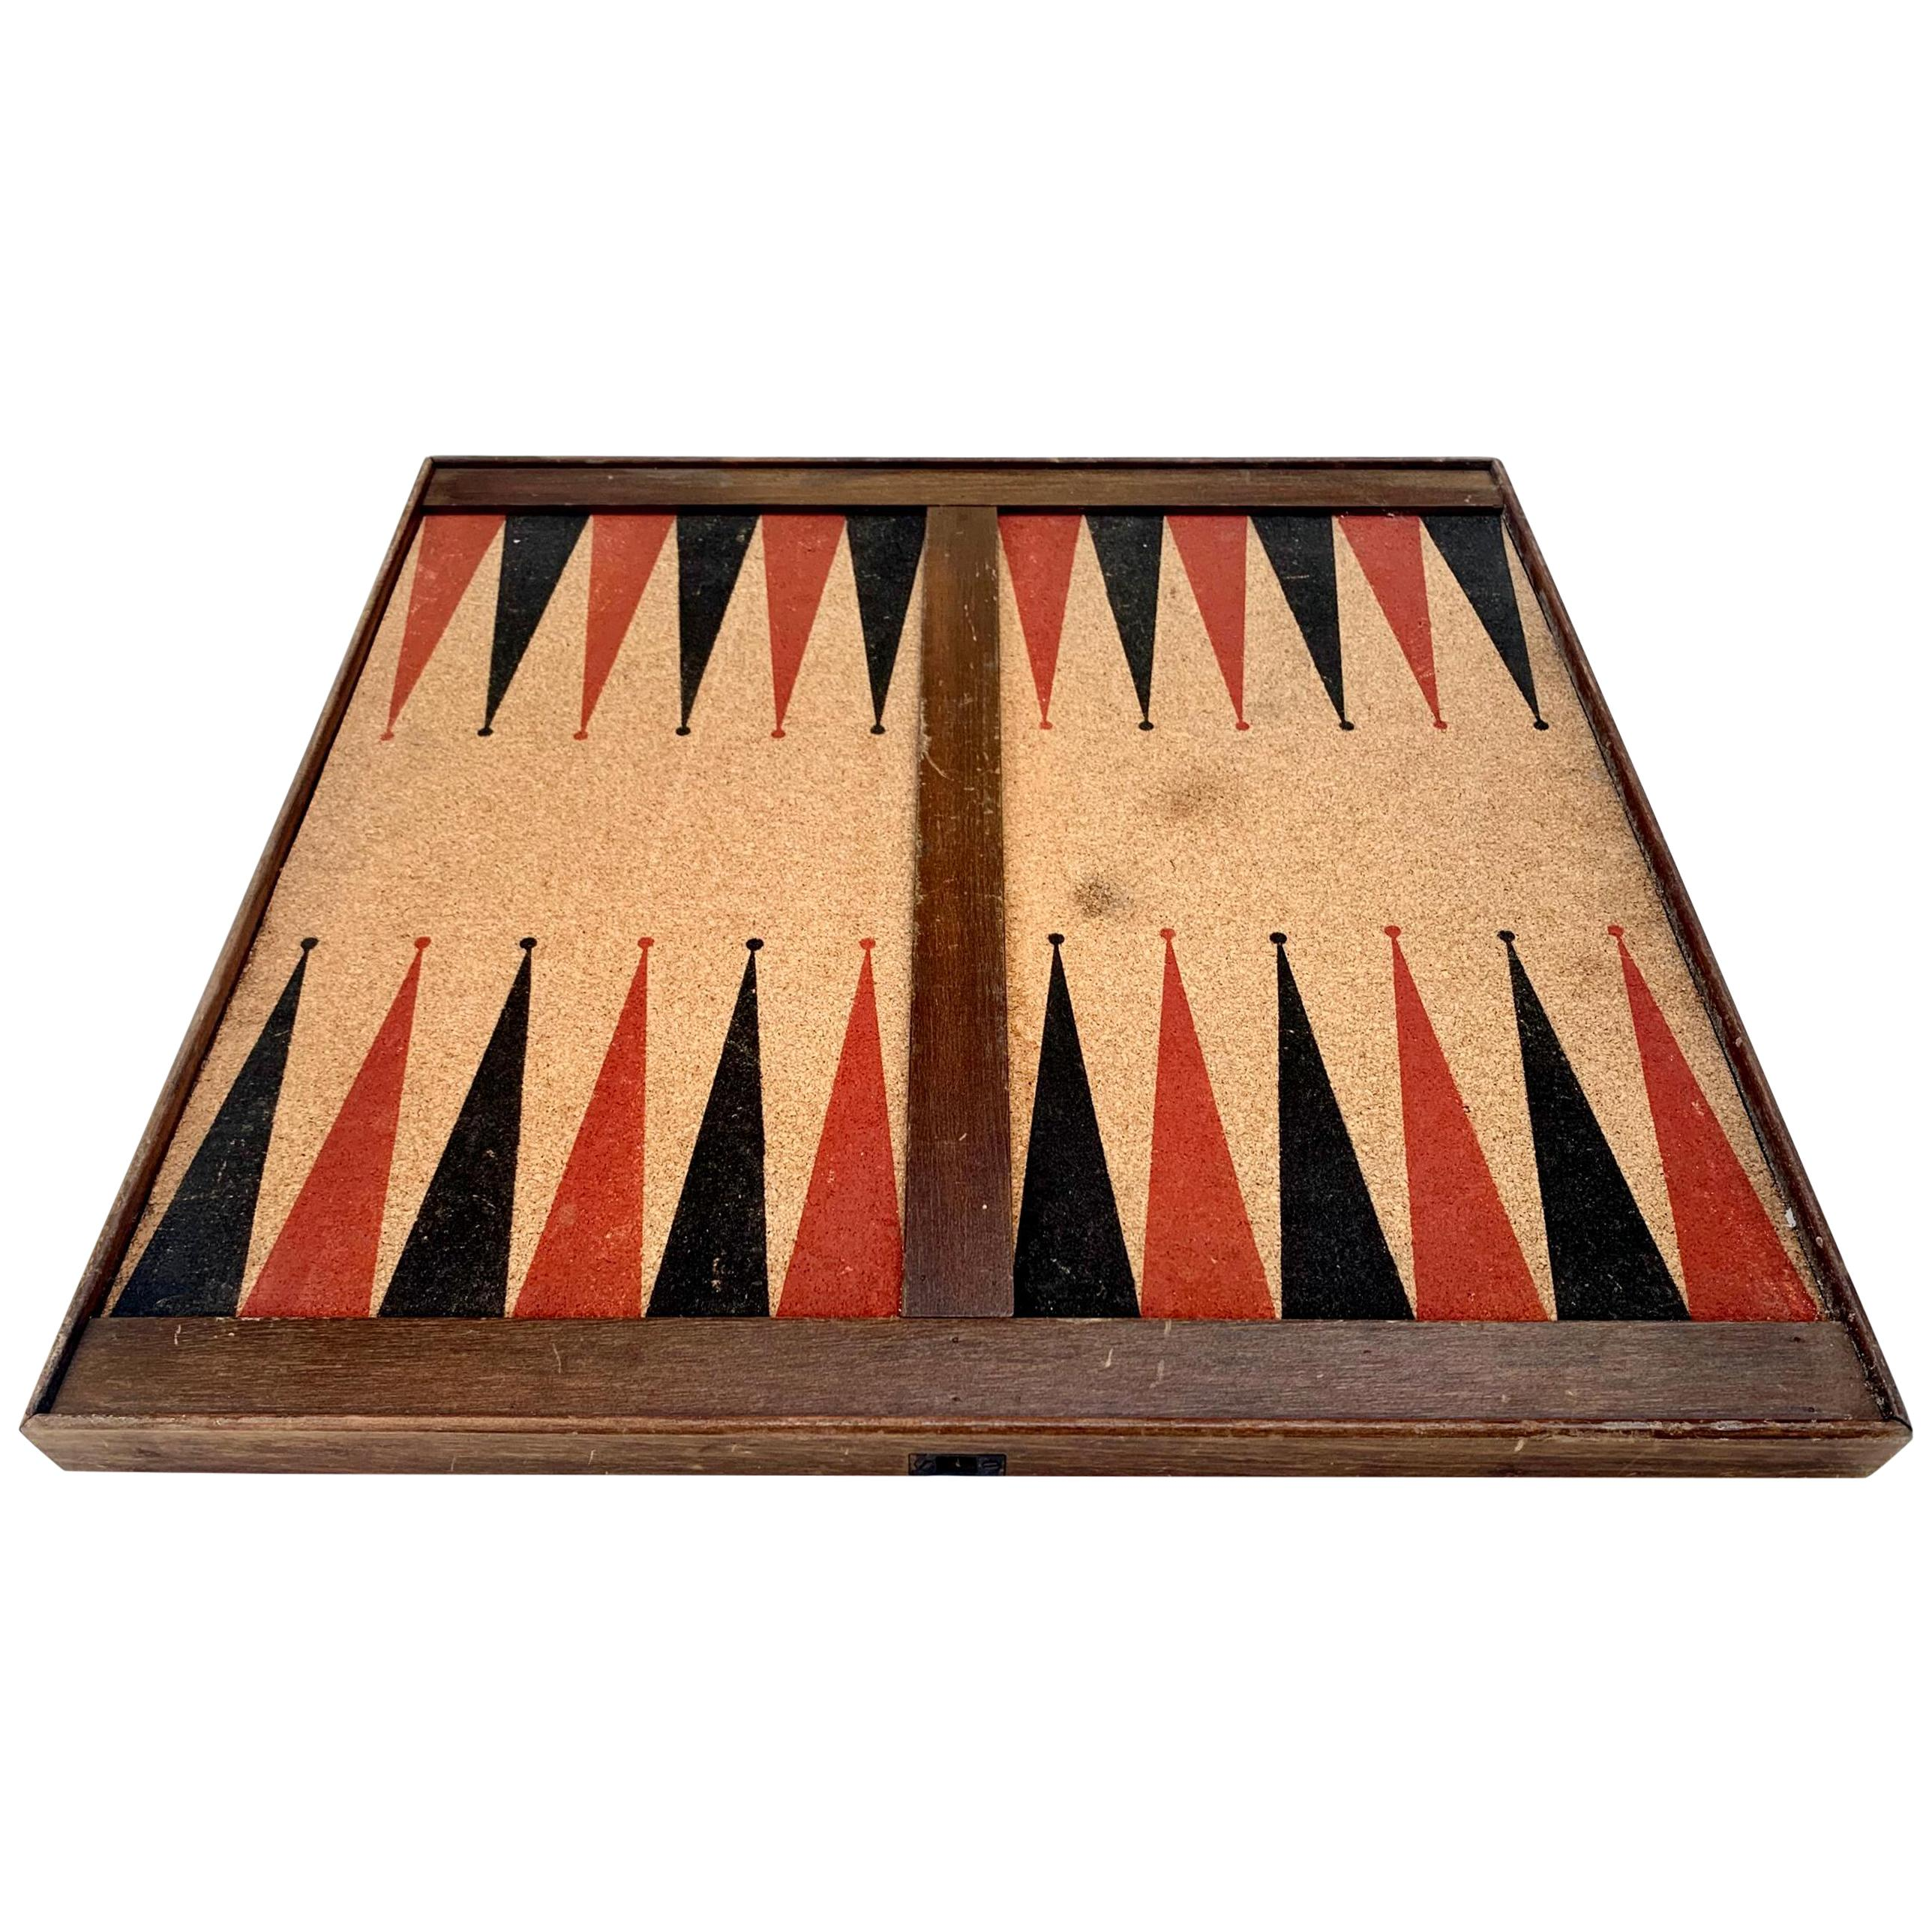 Vintage Cork and Wood Backgammon/ Chess Board